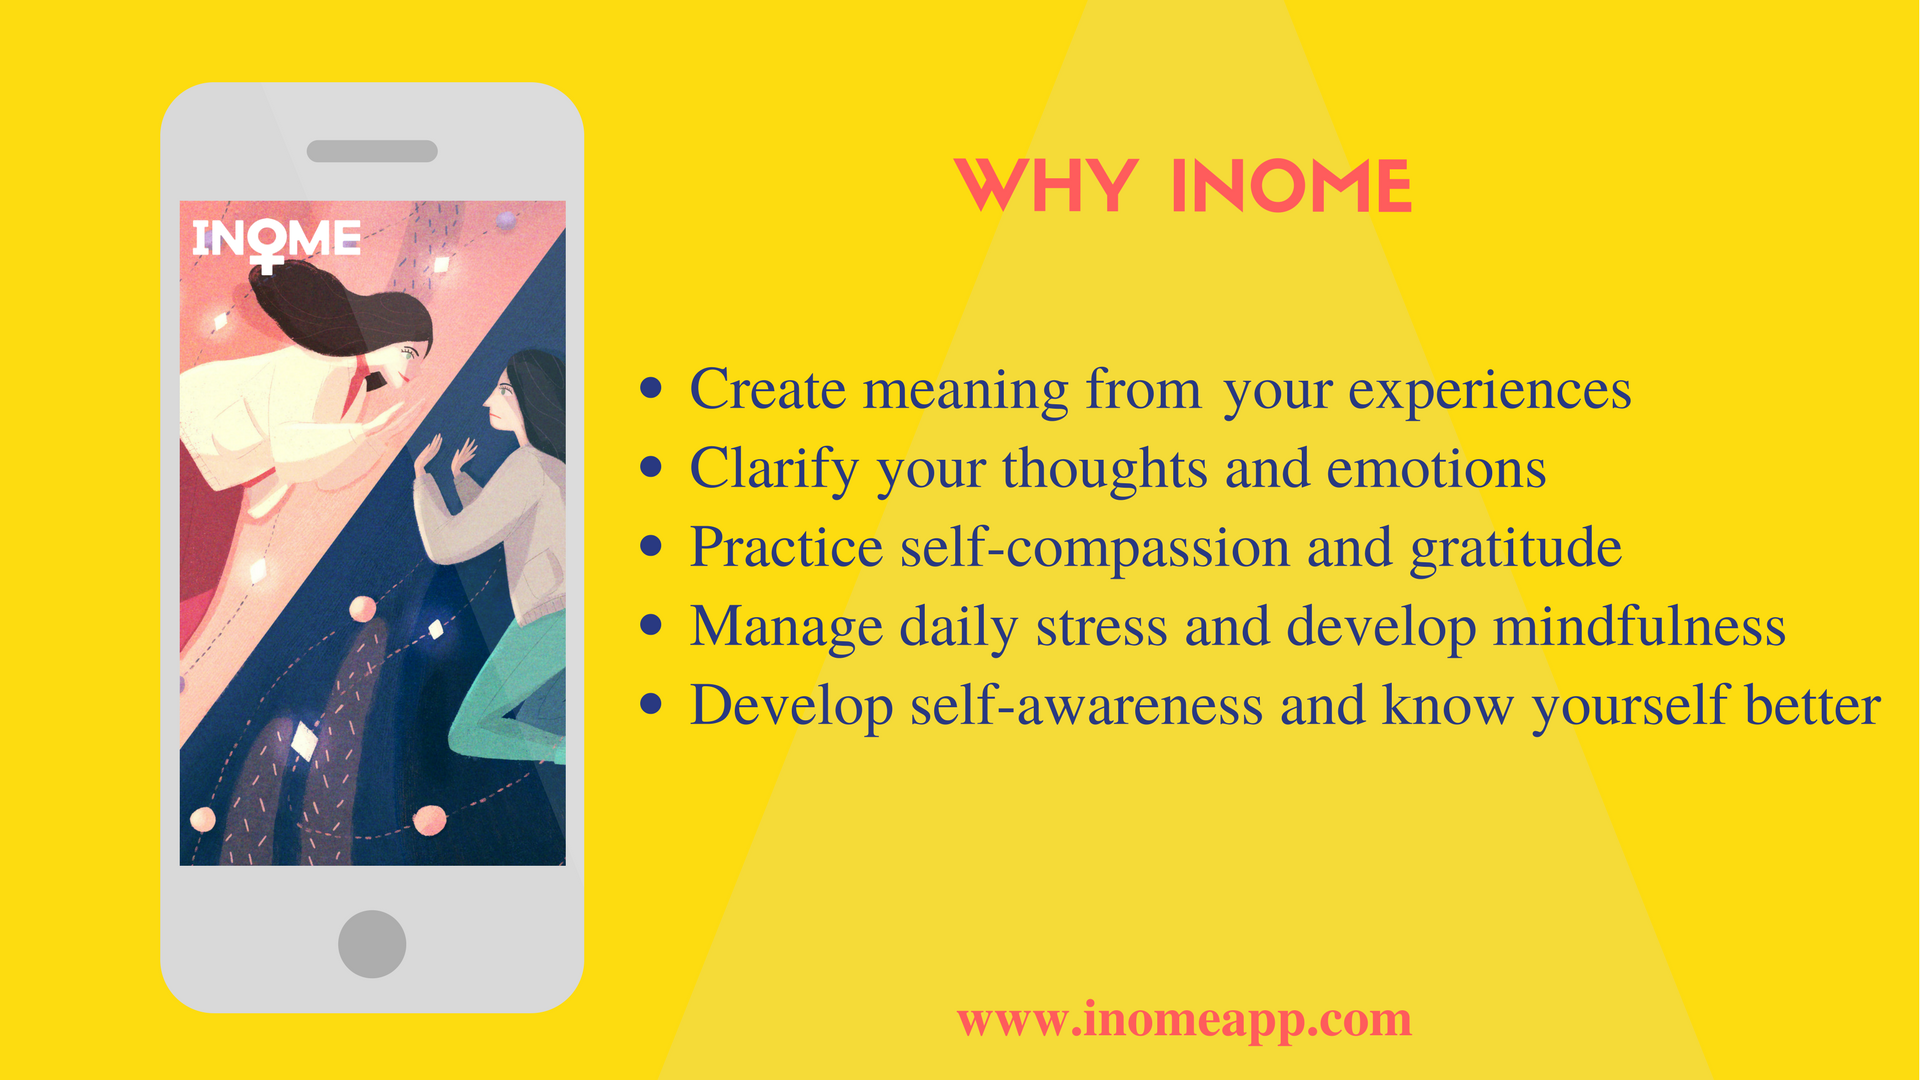 Why should I use the Inome app?